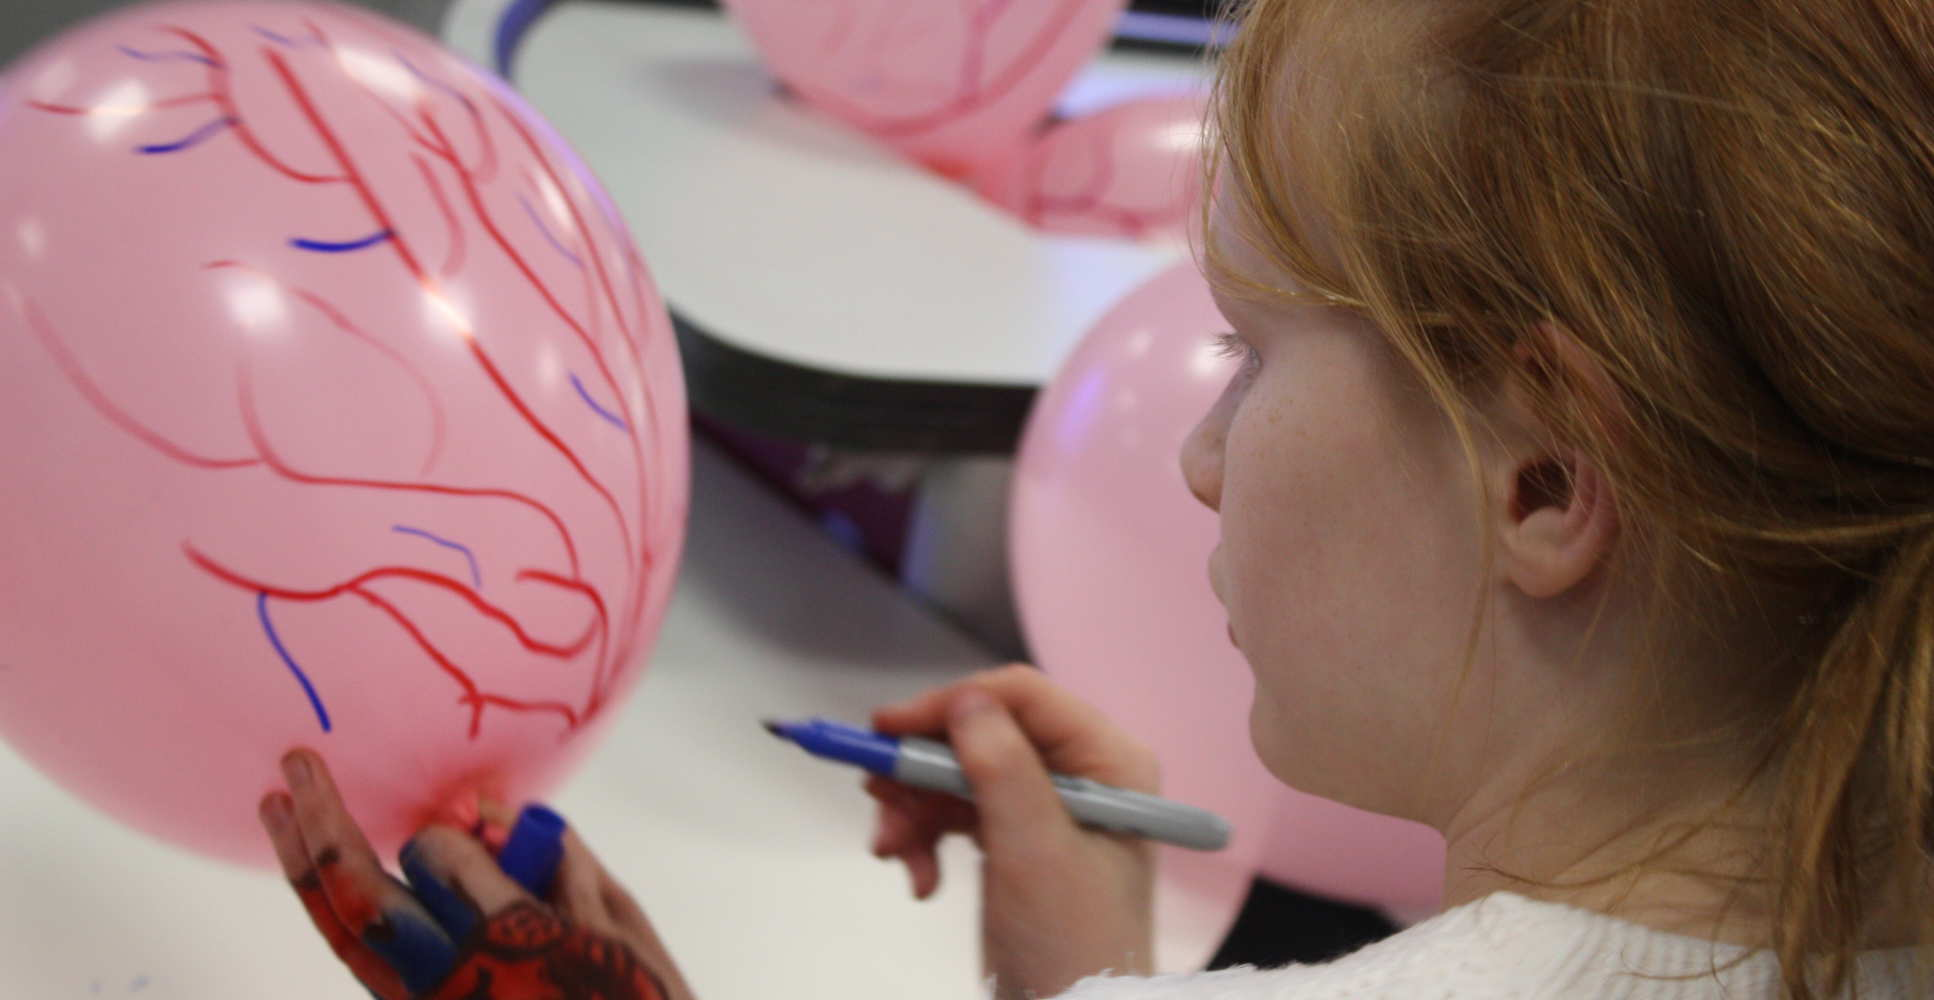 Child draws blood vessels on balloon